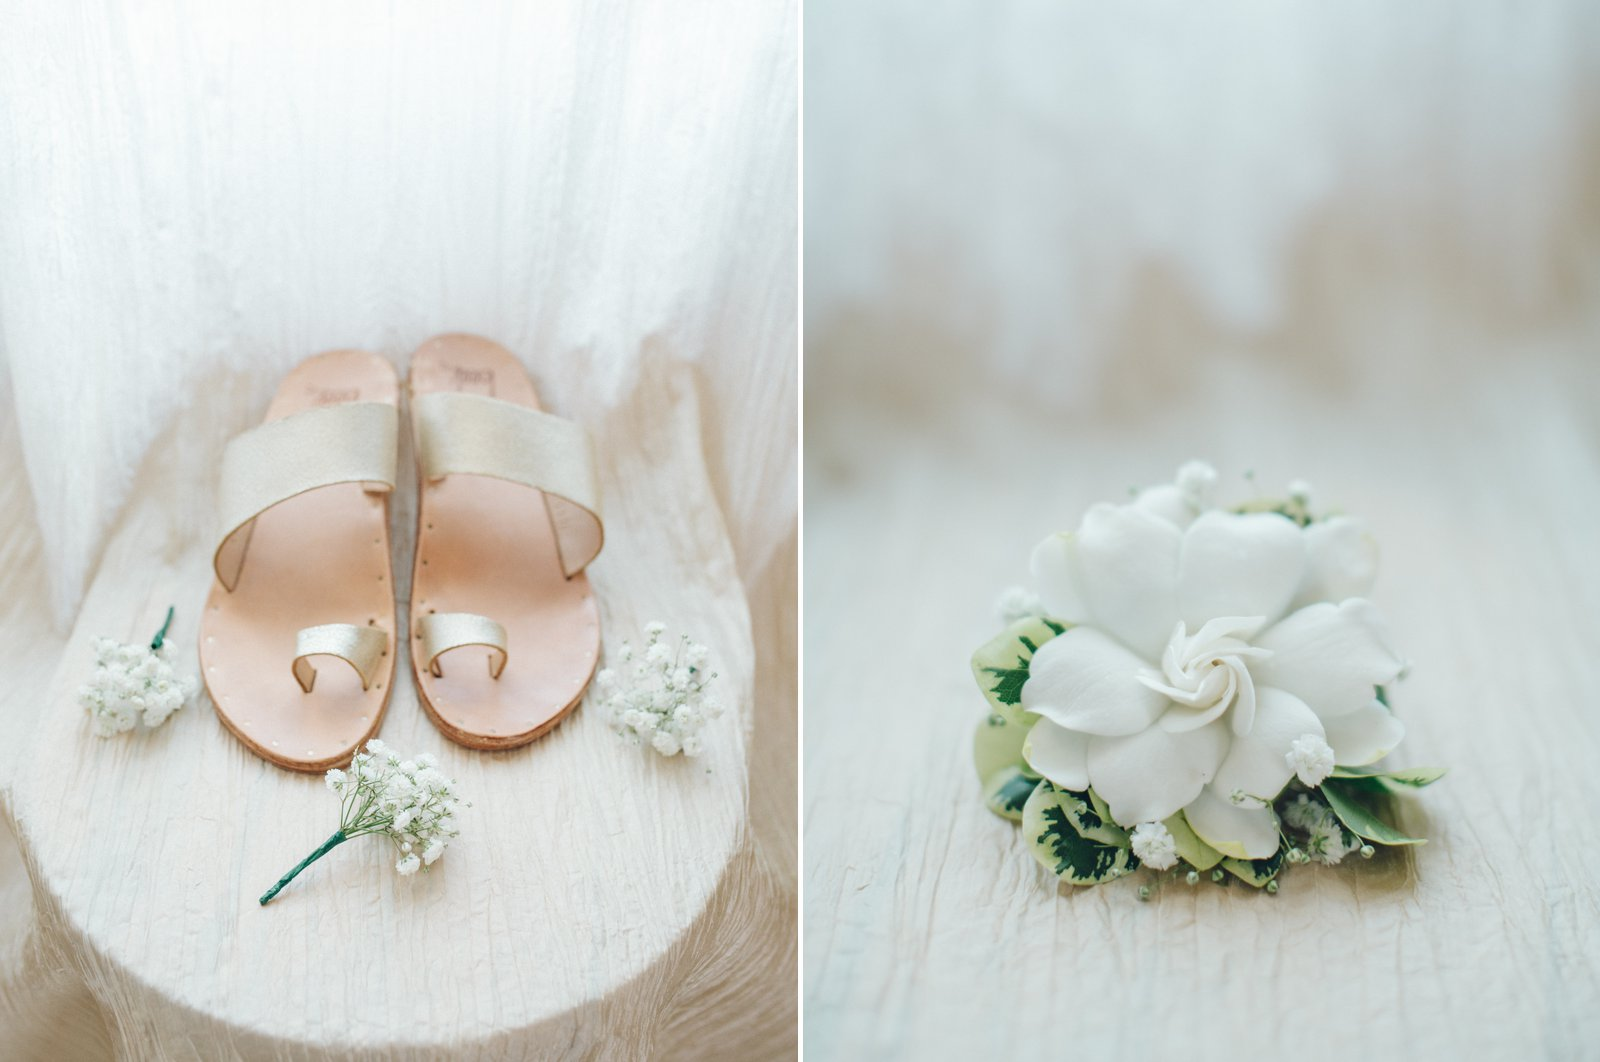 Simple, delicate, natural floral elements and bridal slippers.